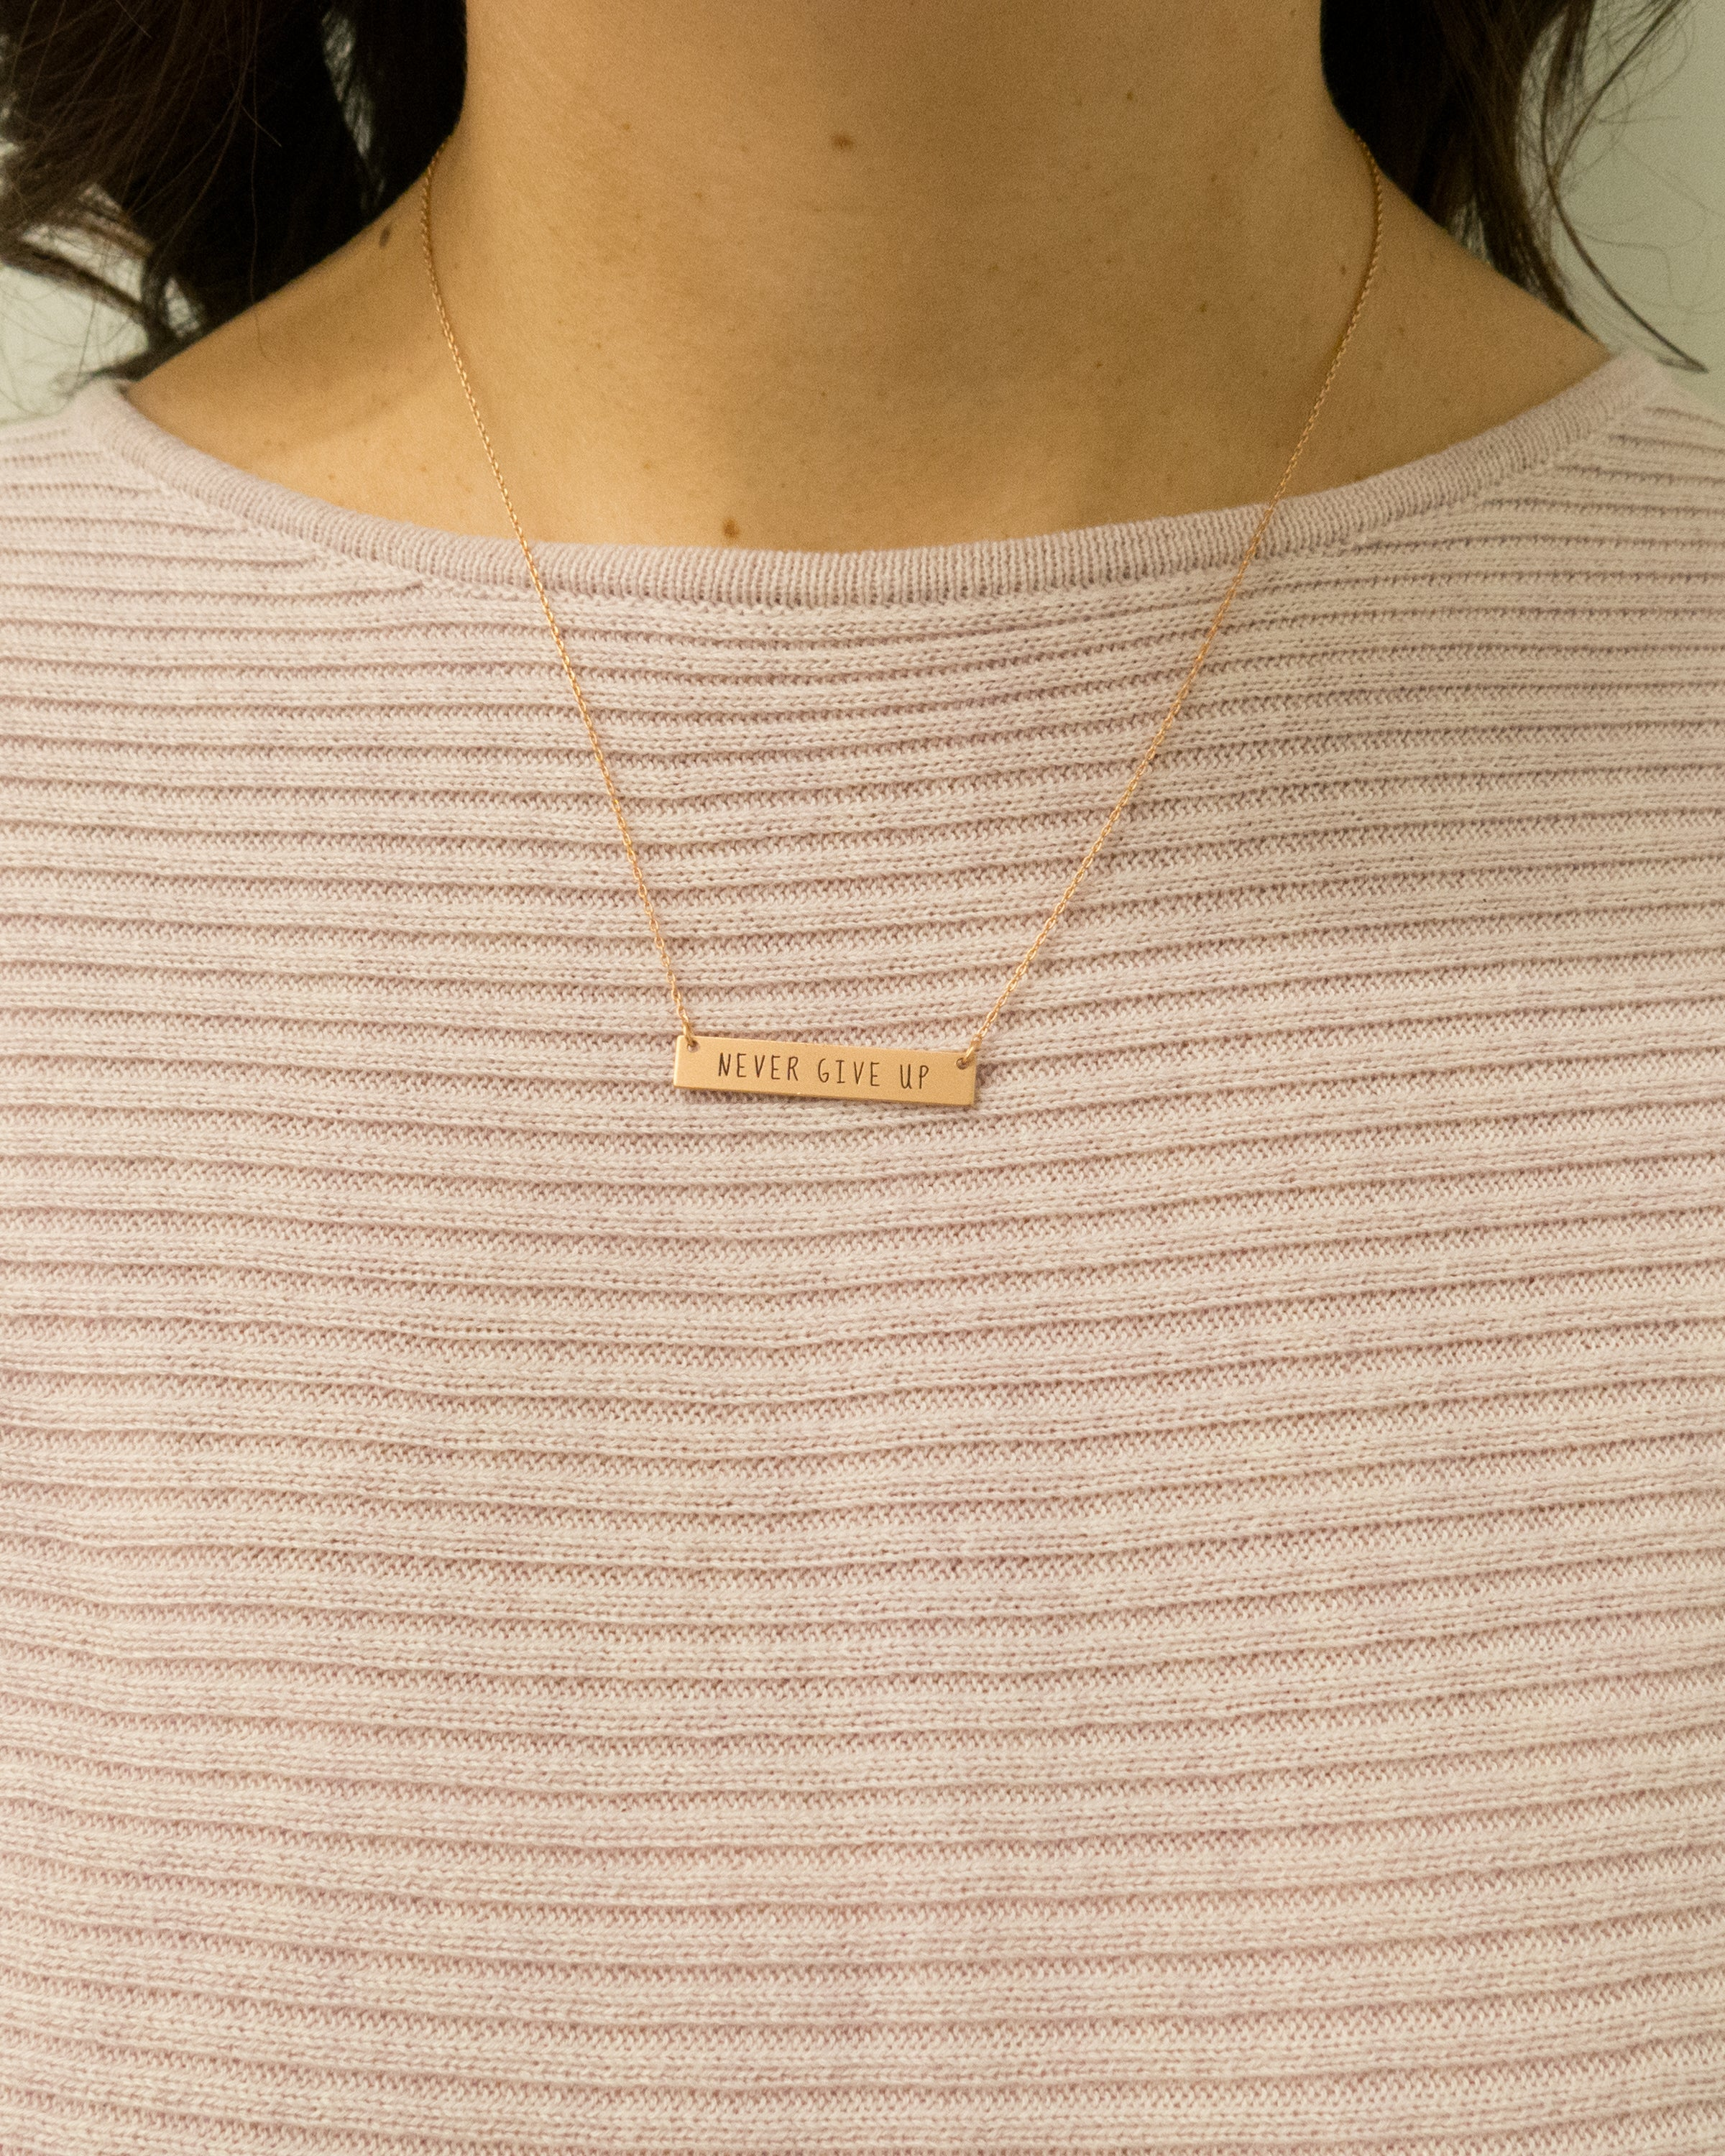 "Never Give Up Inspirational Bar Necklace 18"" in length"